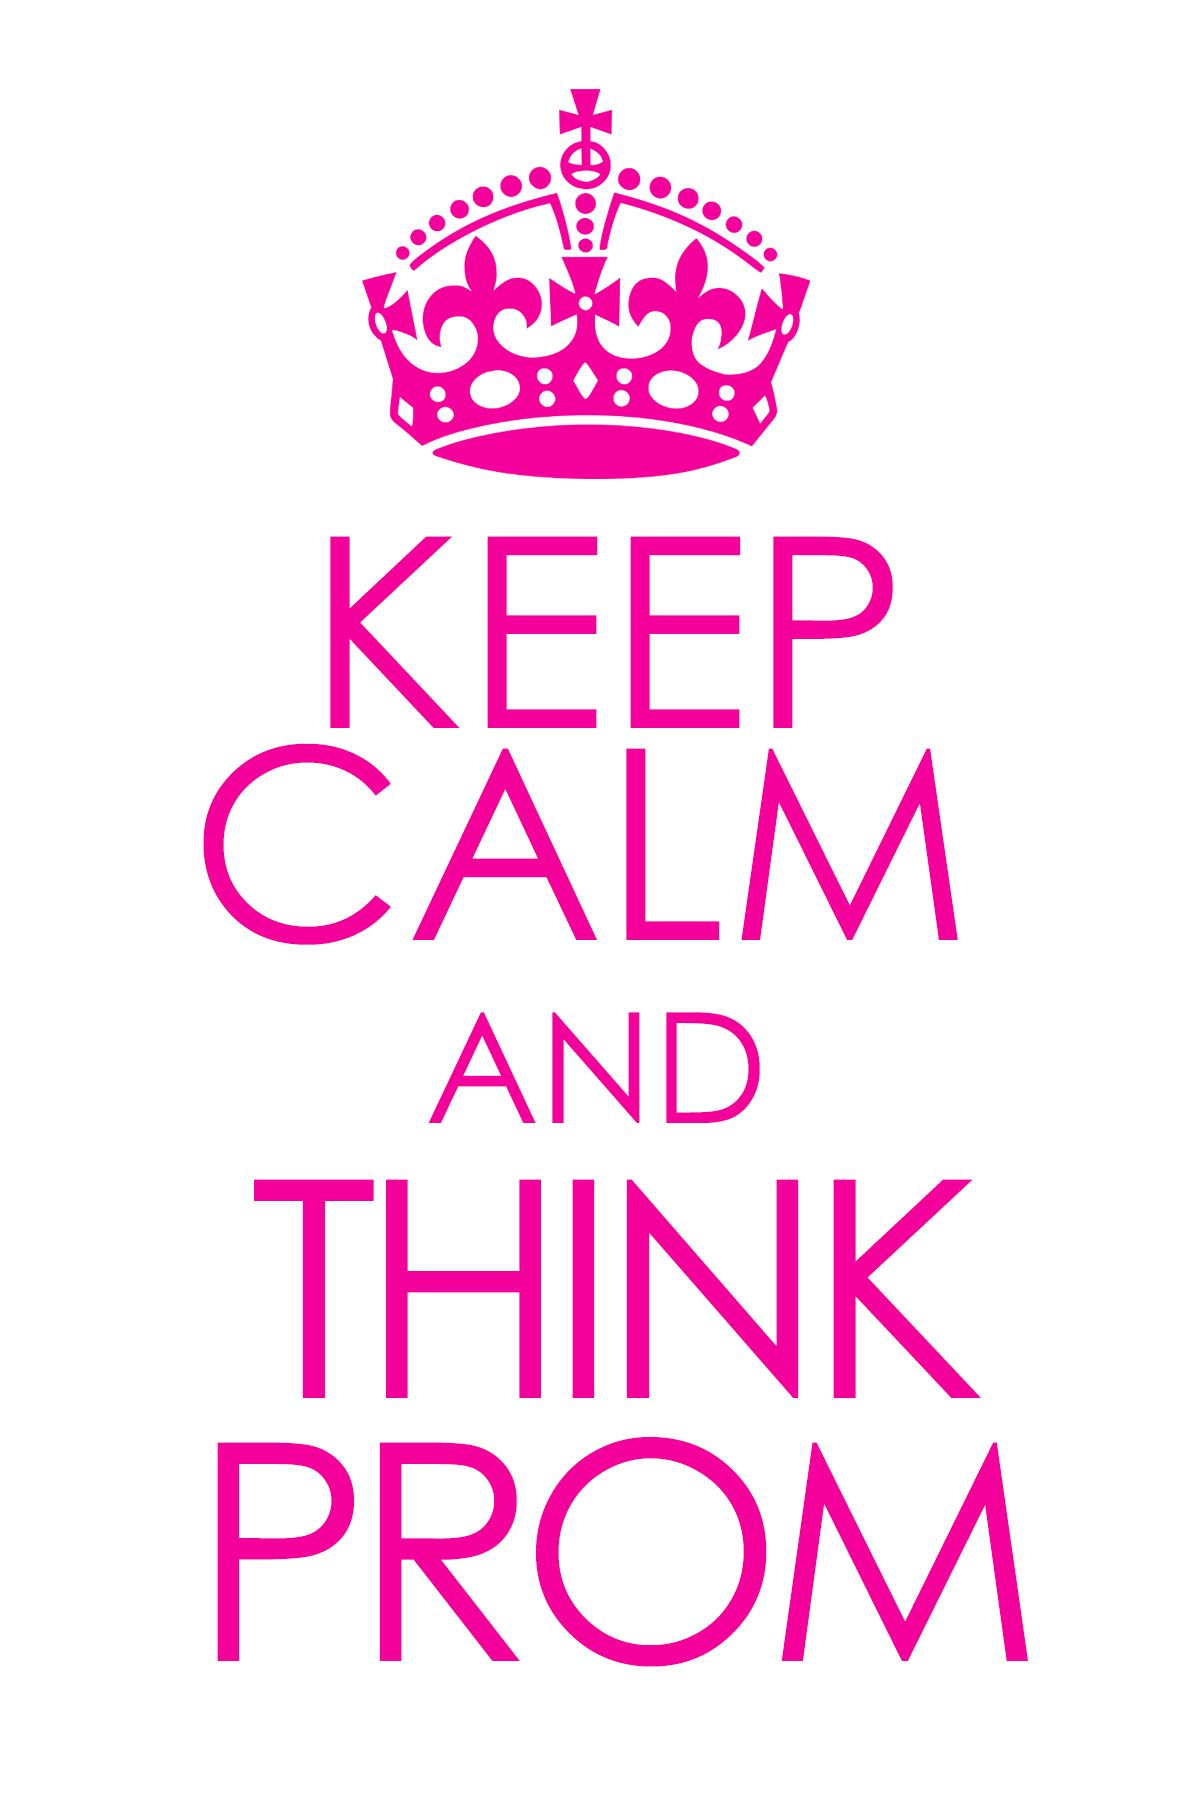 keep calm and think prom #promgirl247 #motto #quote | things that